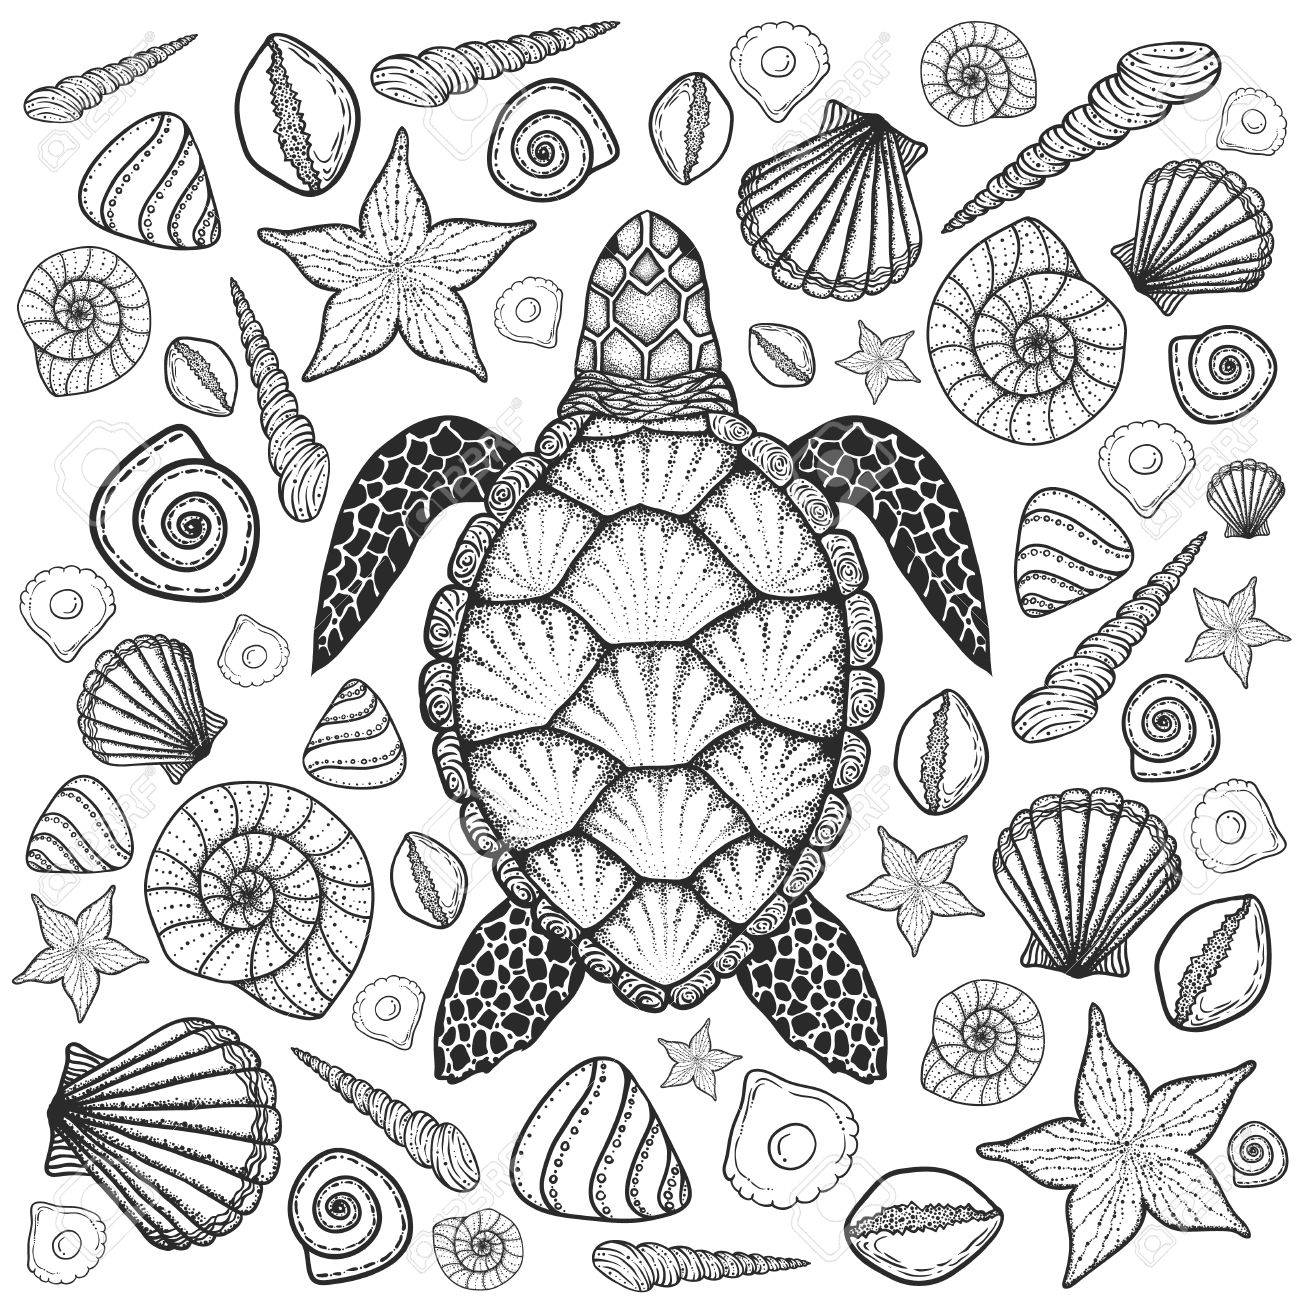 1299x1300 Sea Turtle And Shells In Line Art Style. Hand Drawn Vector